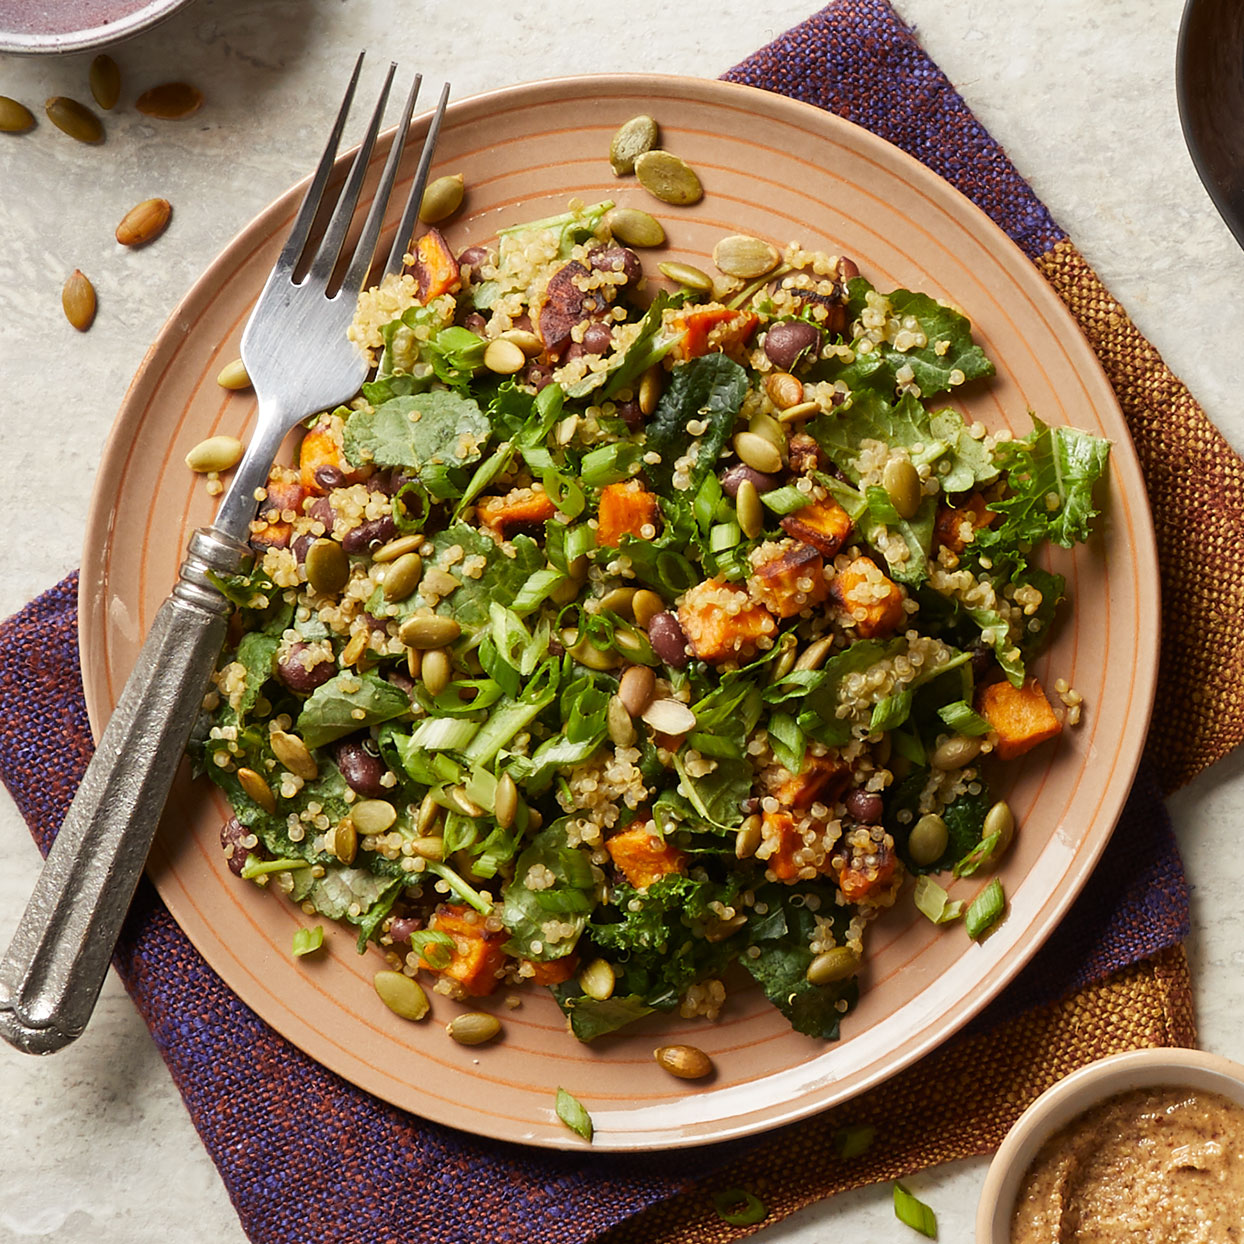 Winter Kale & Quinoa Salad with Avocado Trusted Brands